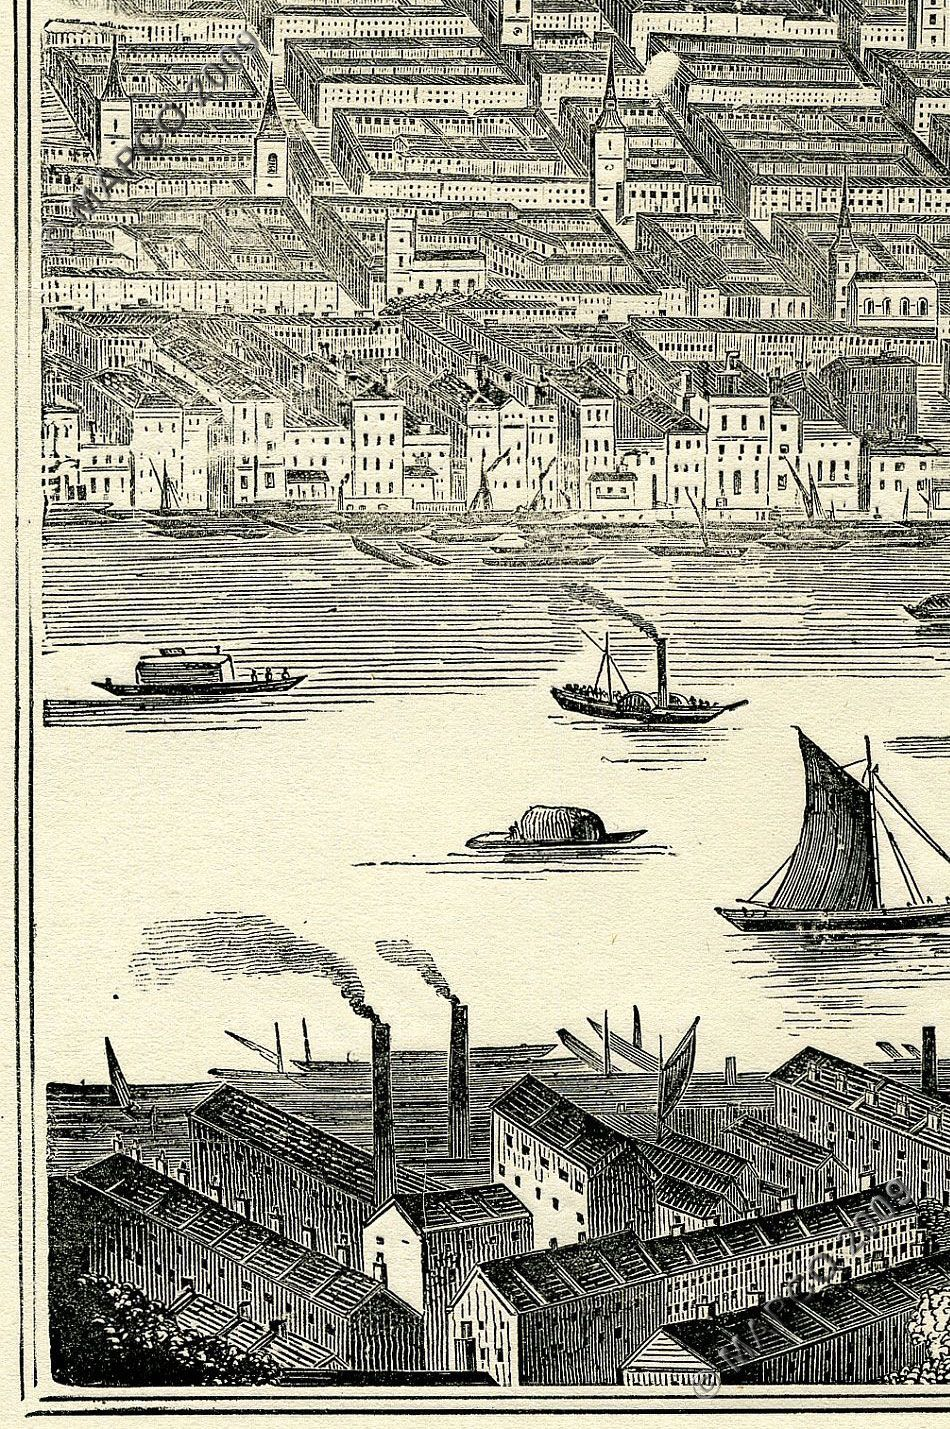 Panorama of the river thames in 1845